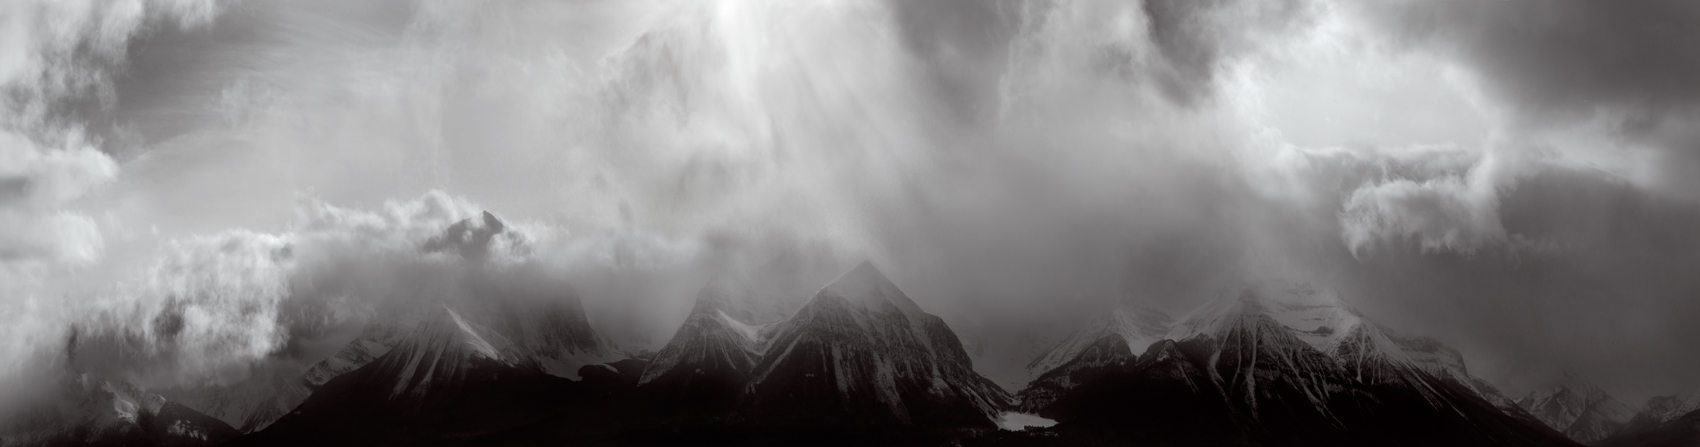 Jon Wyatt Photography - Rocky Mountains, Banff